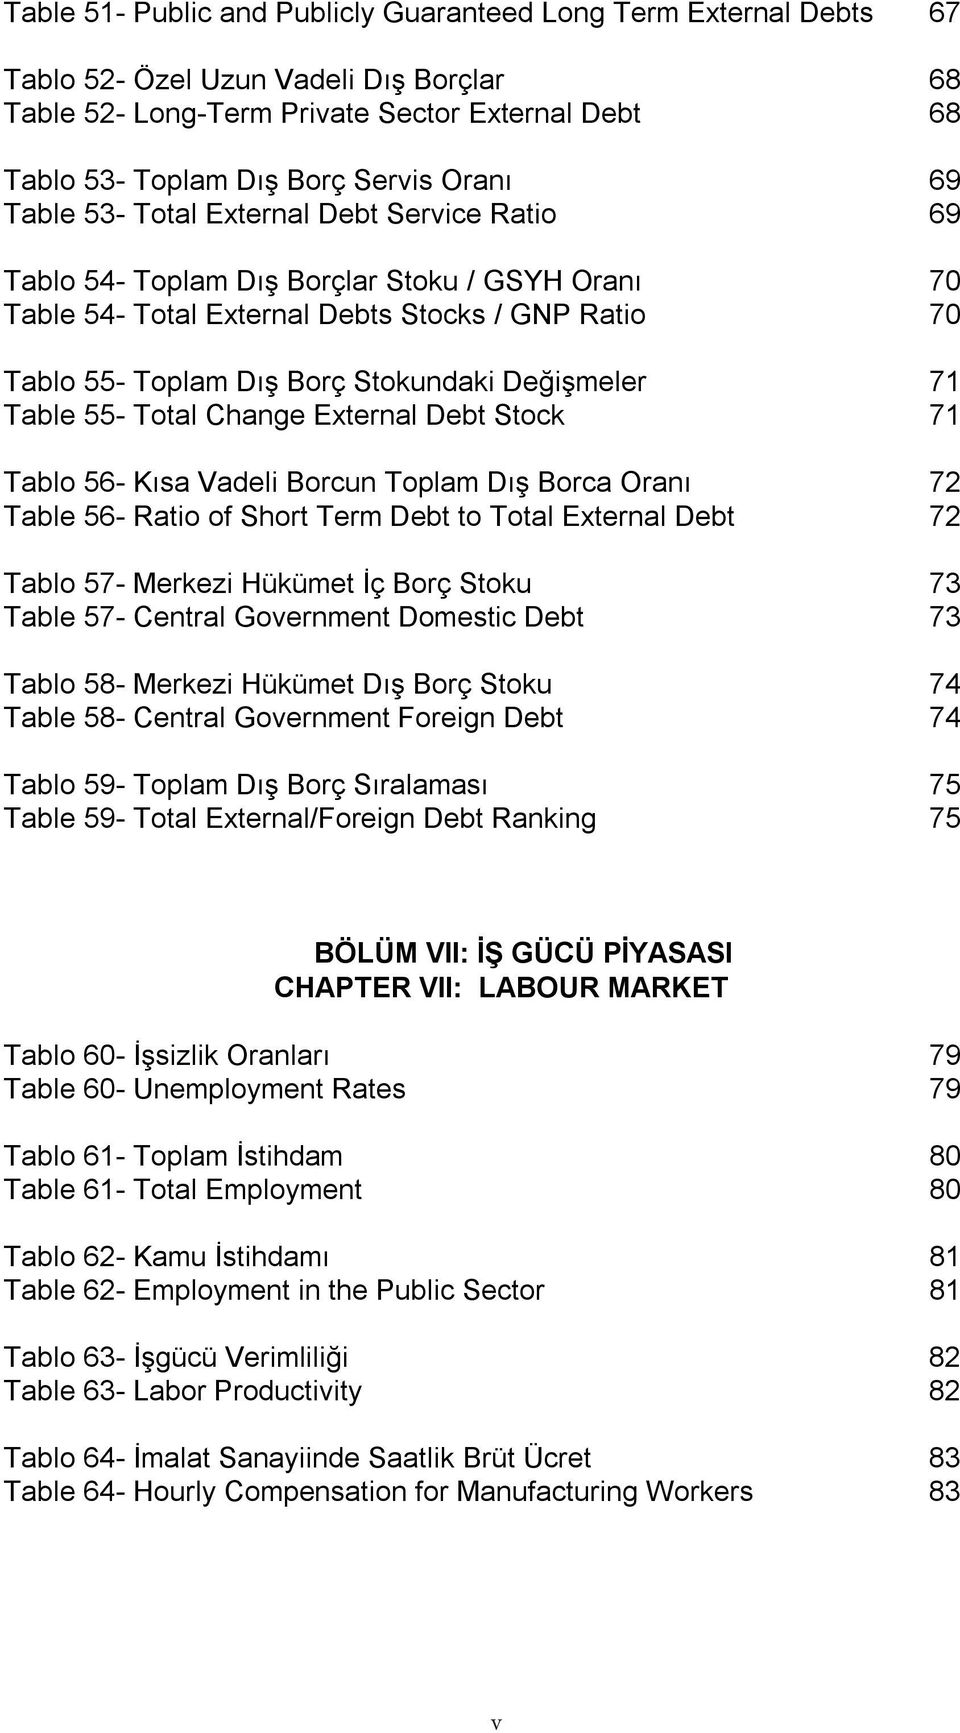 Değişmeler 71 Table 55- Total Change External Debt Stock 71 Tablo 56- Kısa Vadeli Borcun Toplam Dış Borca Oranı 72 Table 56- Ratio of Short Term Debt to Total External Debt 72 Tablo 57- Merkezi